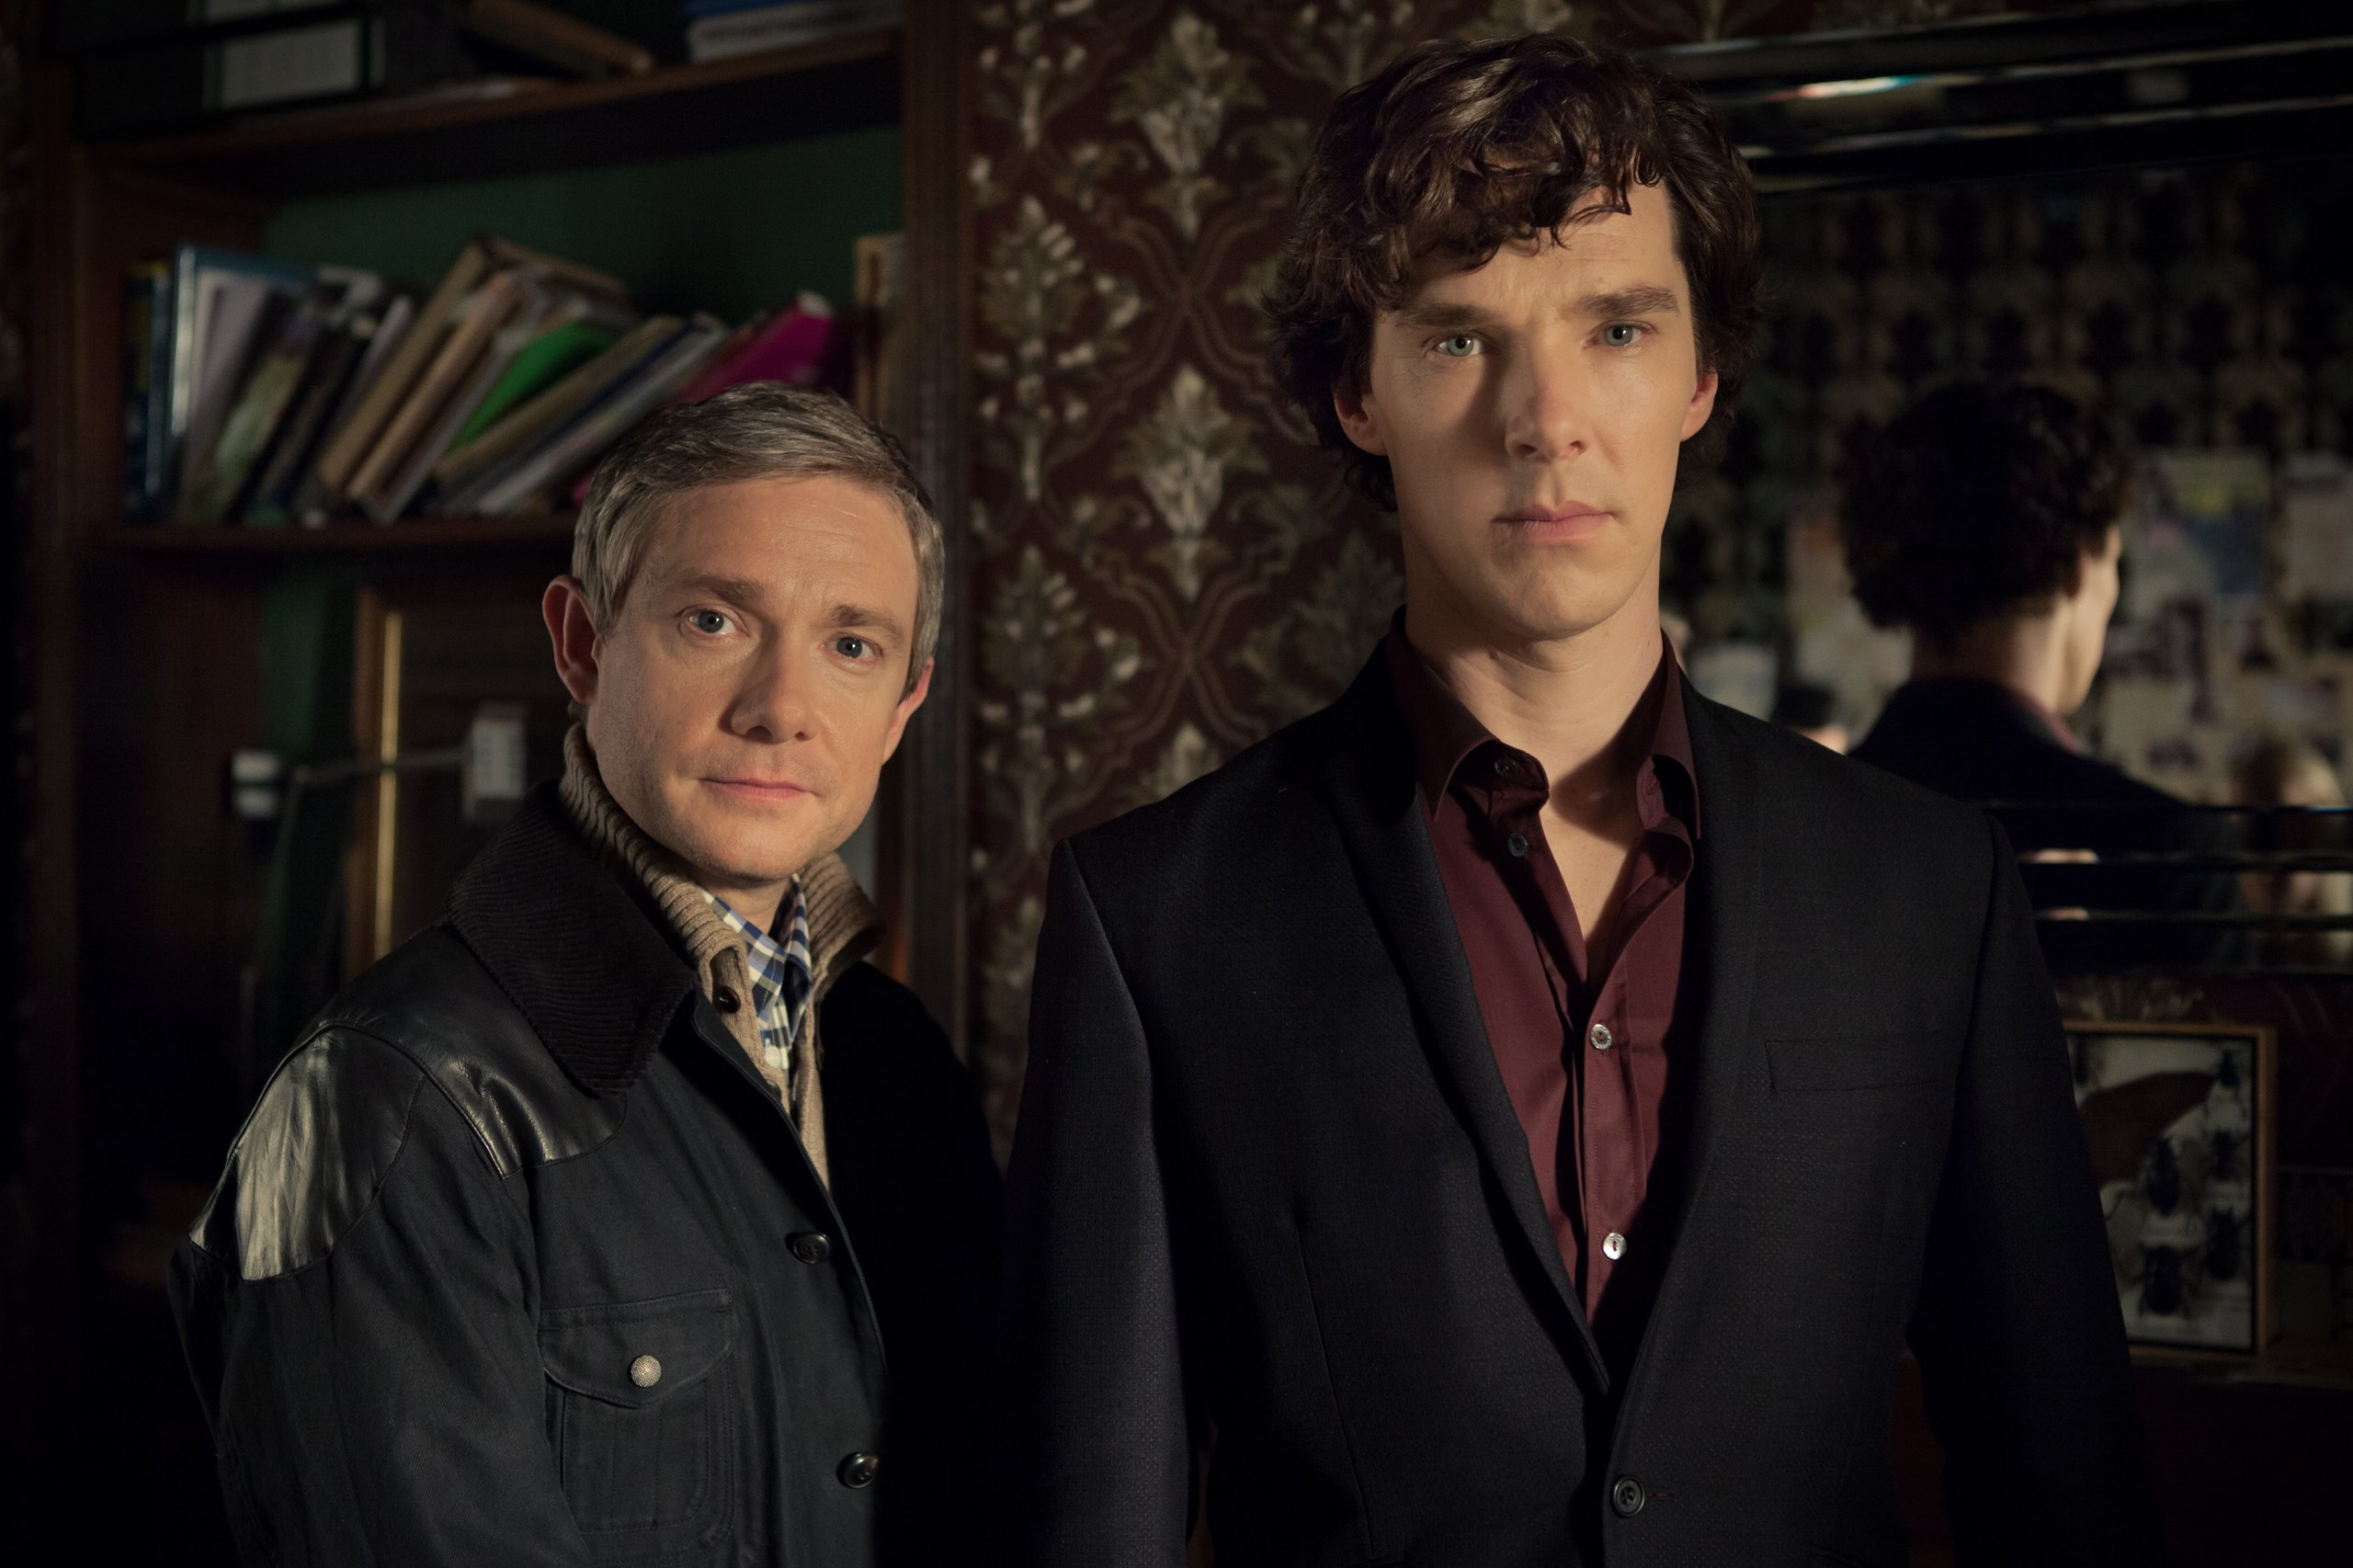 an analysis of the influence of season 1 episode 1 of the tv series sherlock to its audience «sherlock» - season 1, episode 1 watch in hd quality with subtitles in different languages for free and without registration doctor john watson, a veteran of the war in afghanistan, returned to london, where he meets with sherlock holmes is an eccentric private detective.